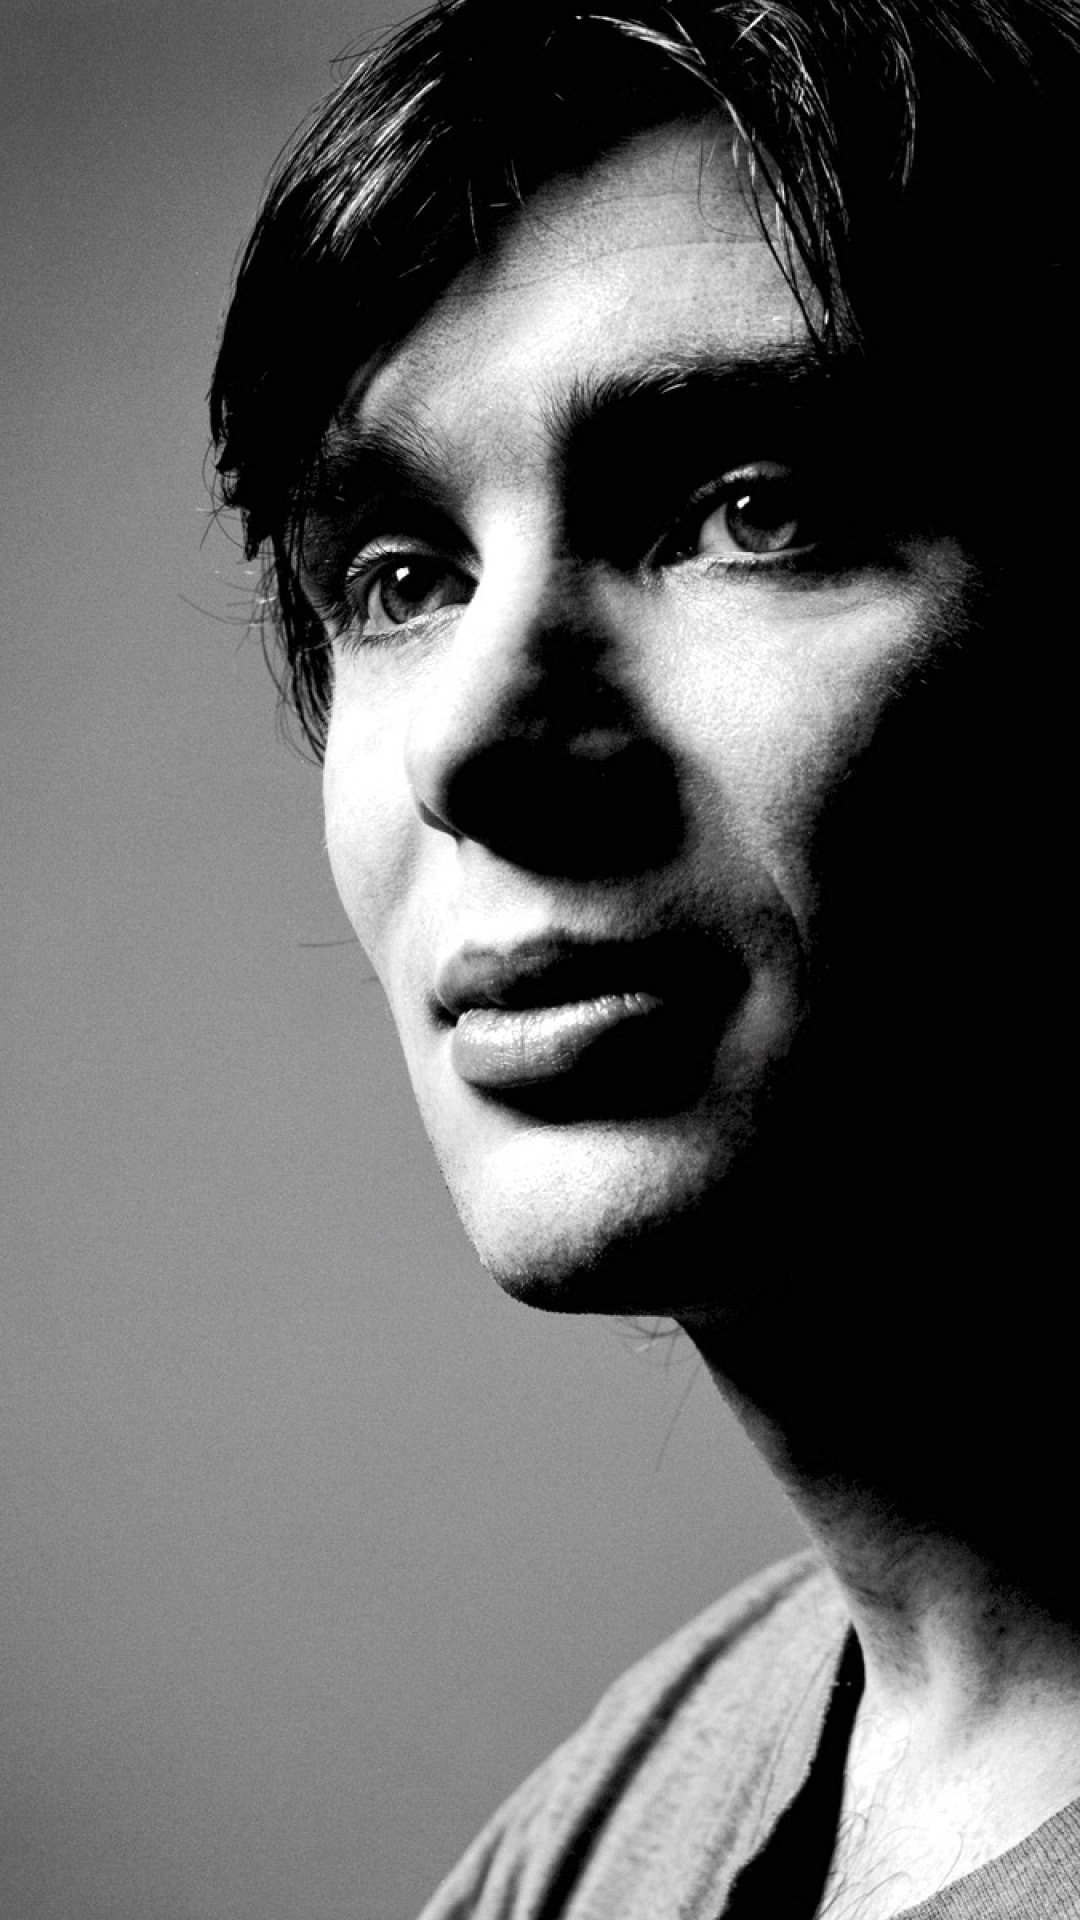 Cillian Murphy For mobile